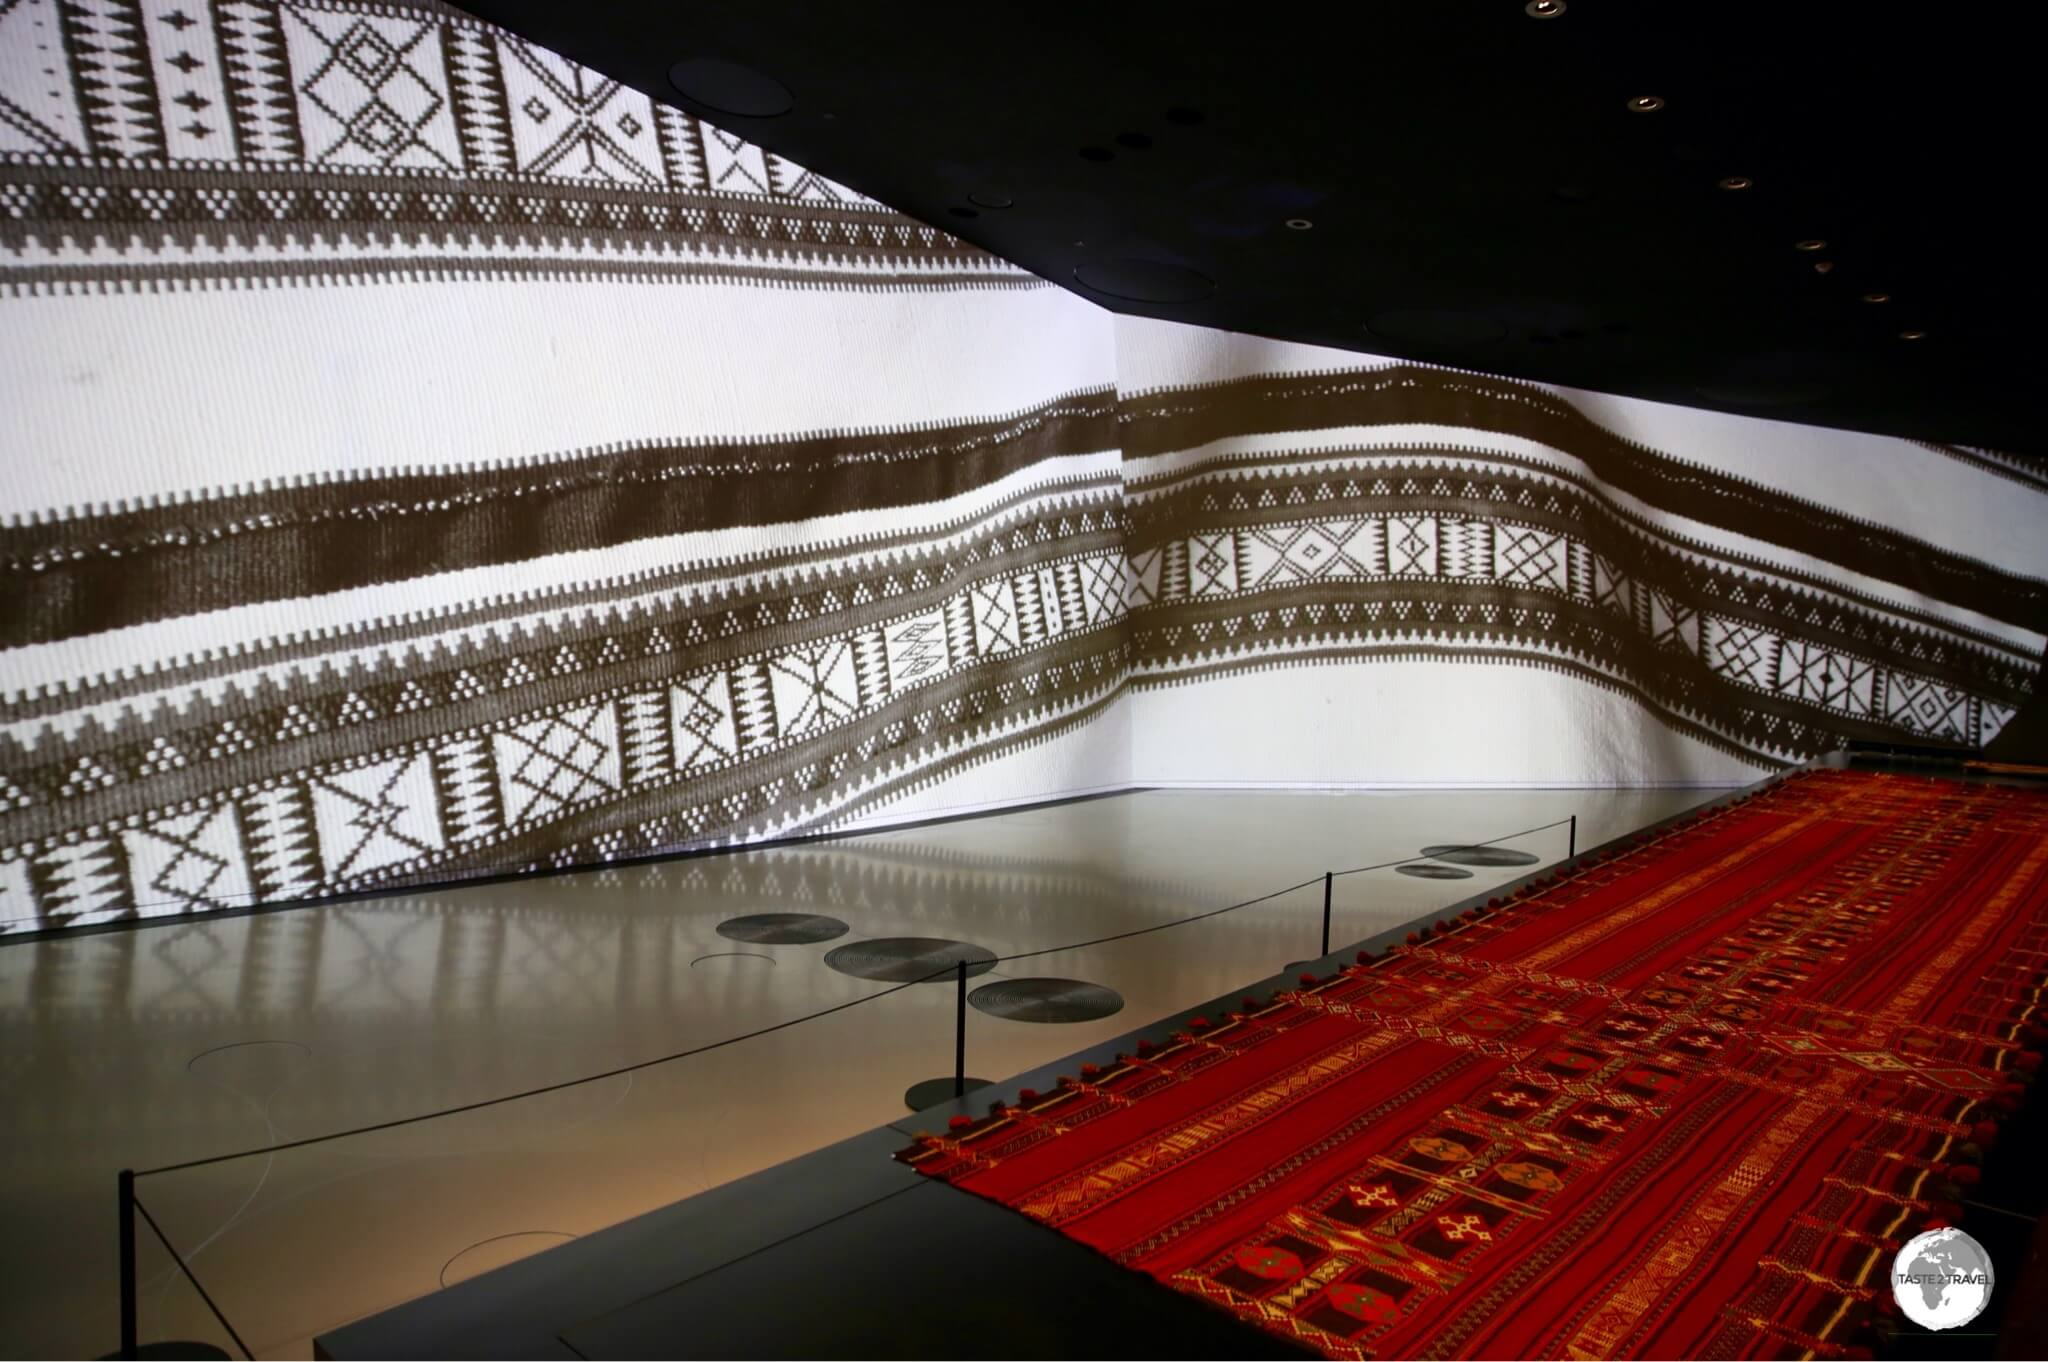 The large, curved walls of the galleries are used to project images which enhance the various displays.